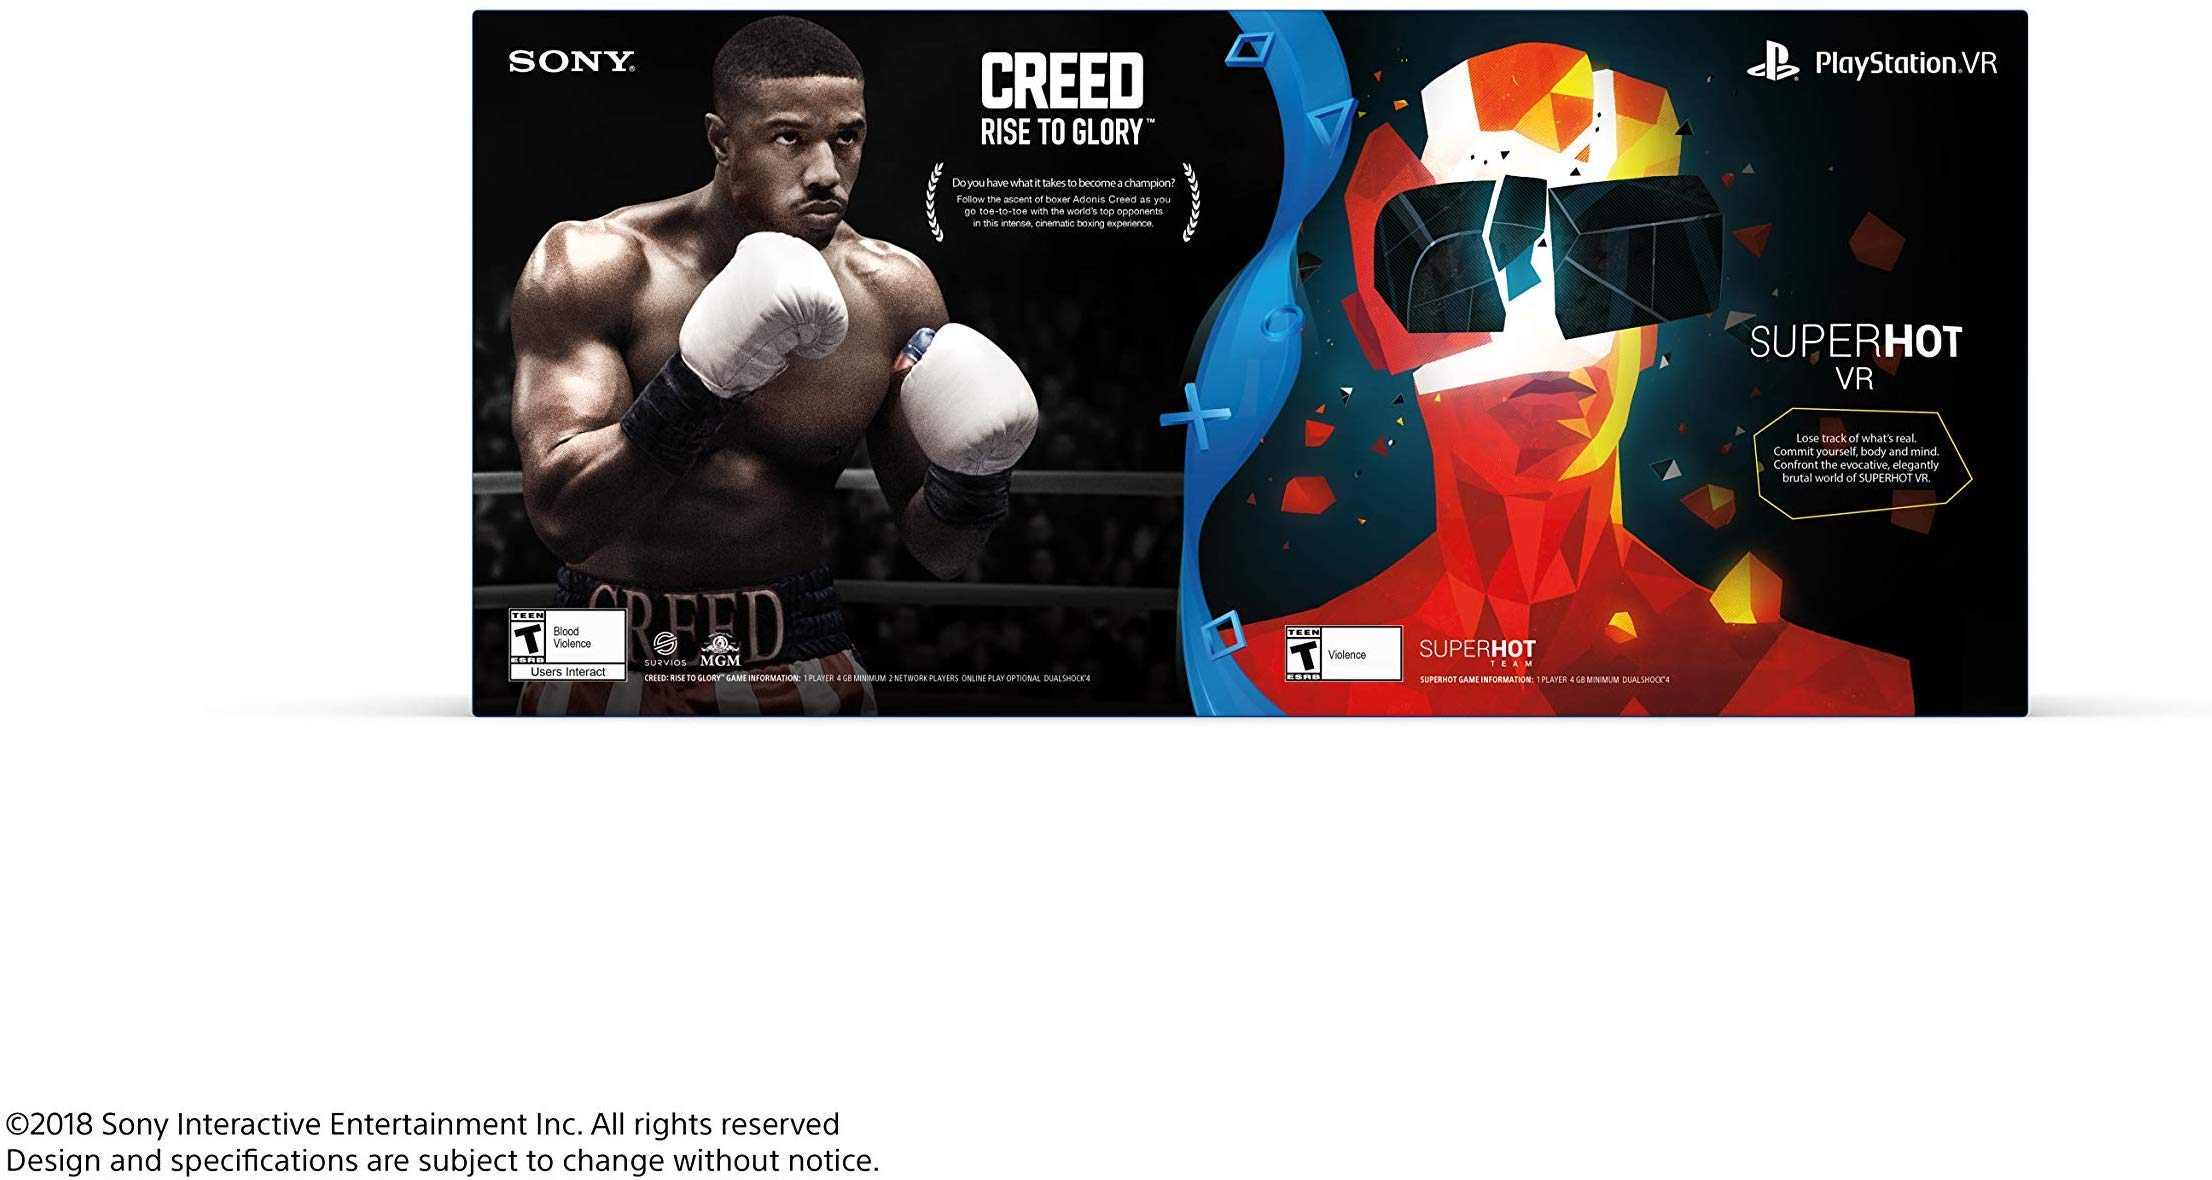 Sony PlayStation VR SUPERHOT VR and CREED Rise to Glory PSVR BUNDLE